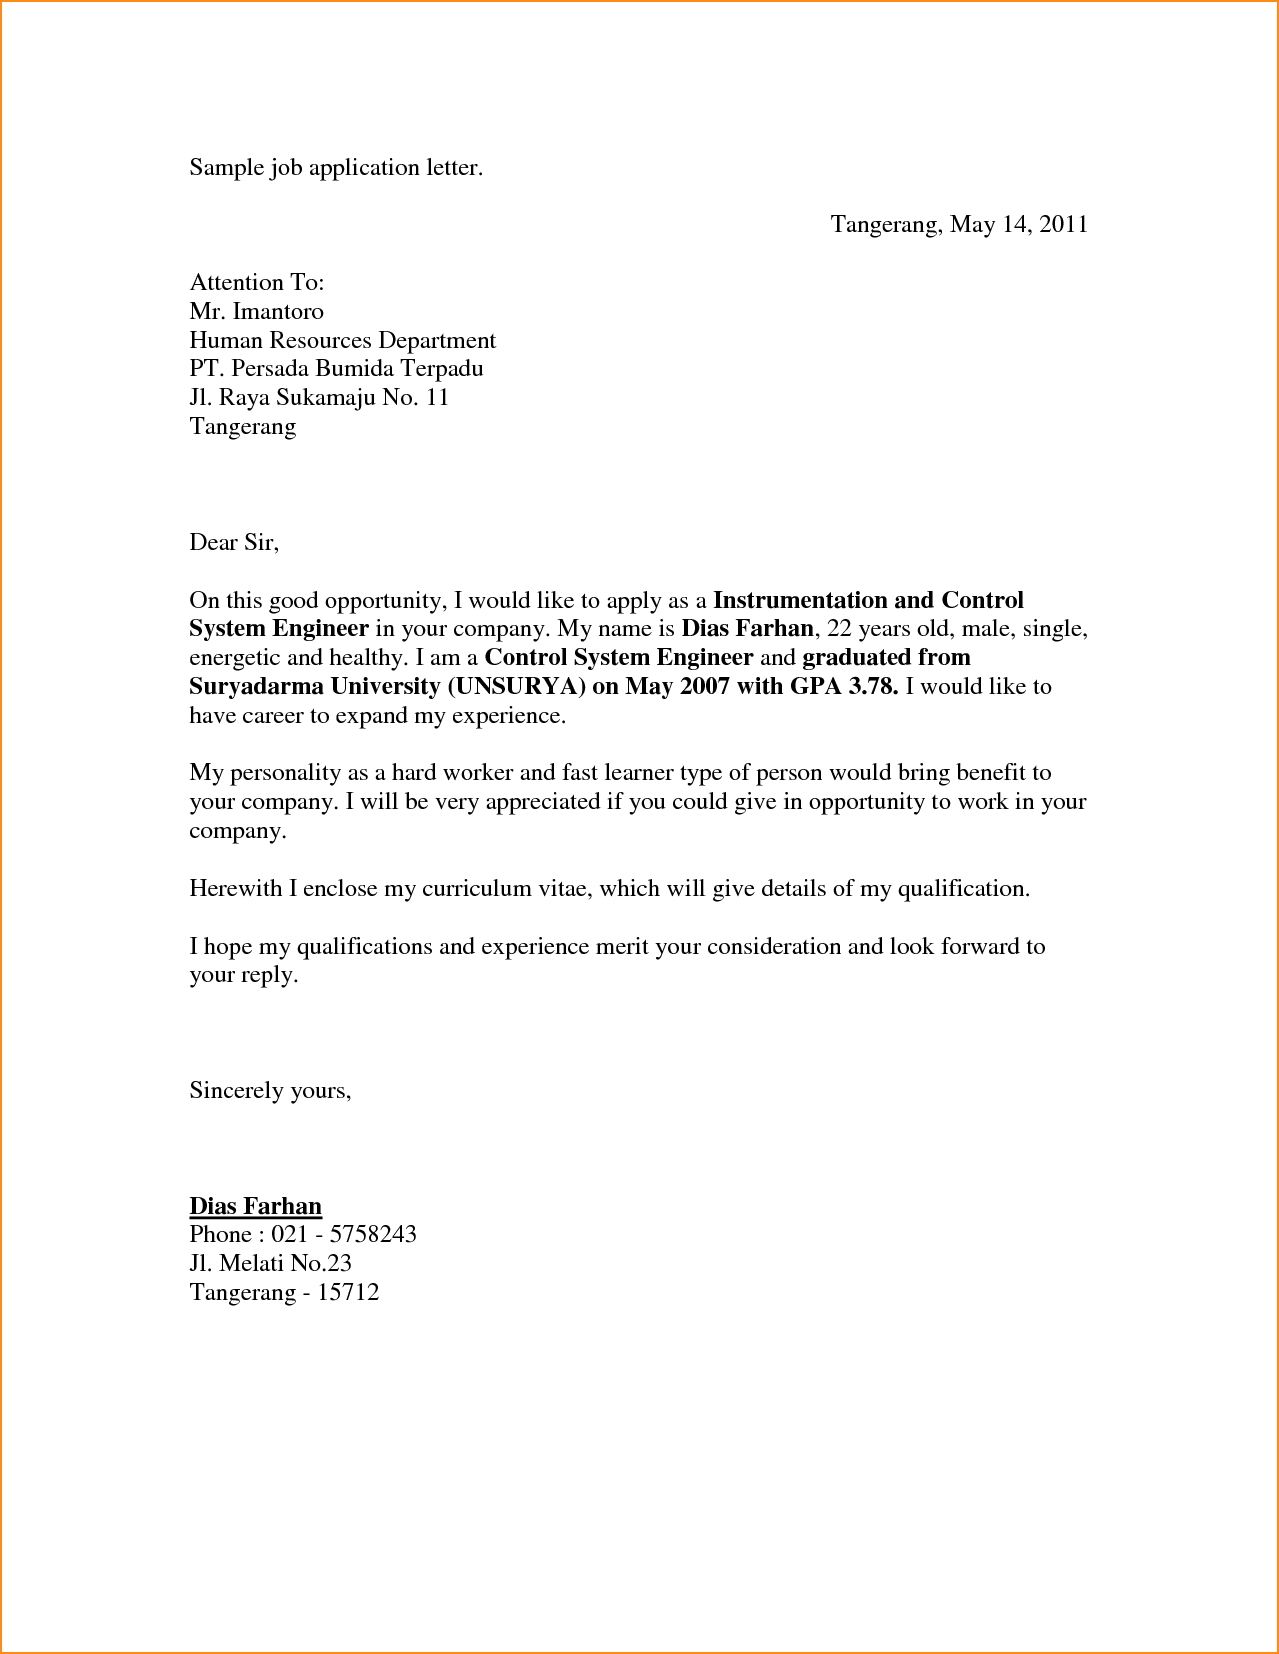 application letter sample engineer latex templates cover letters ...